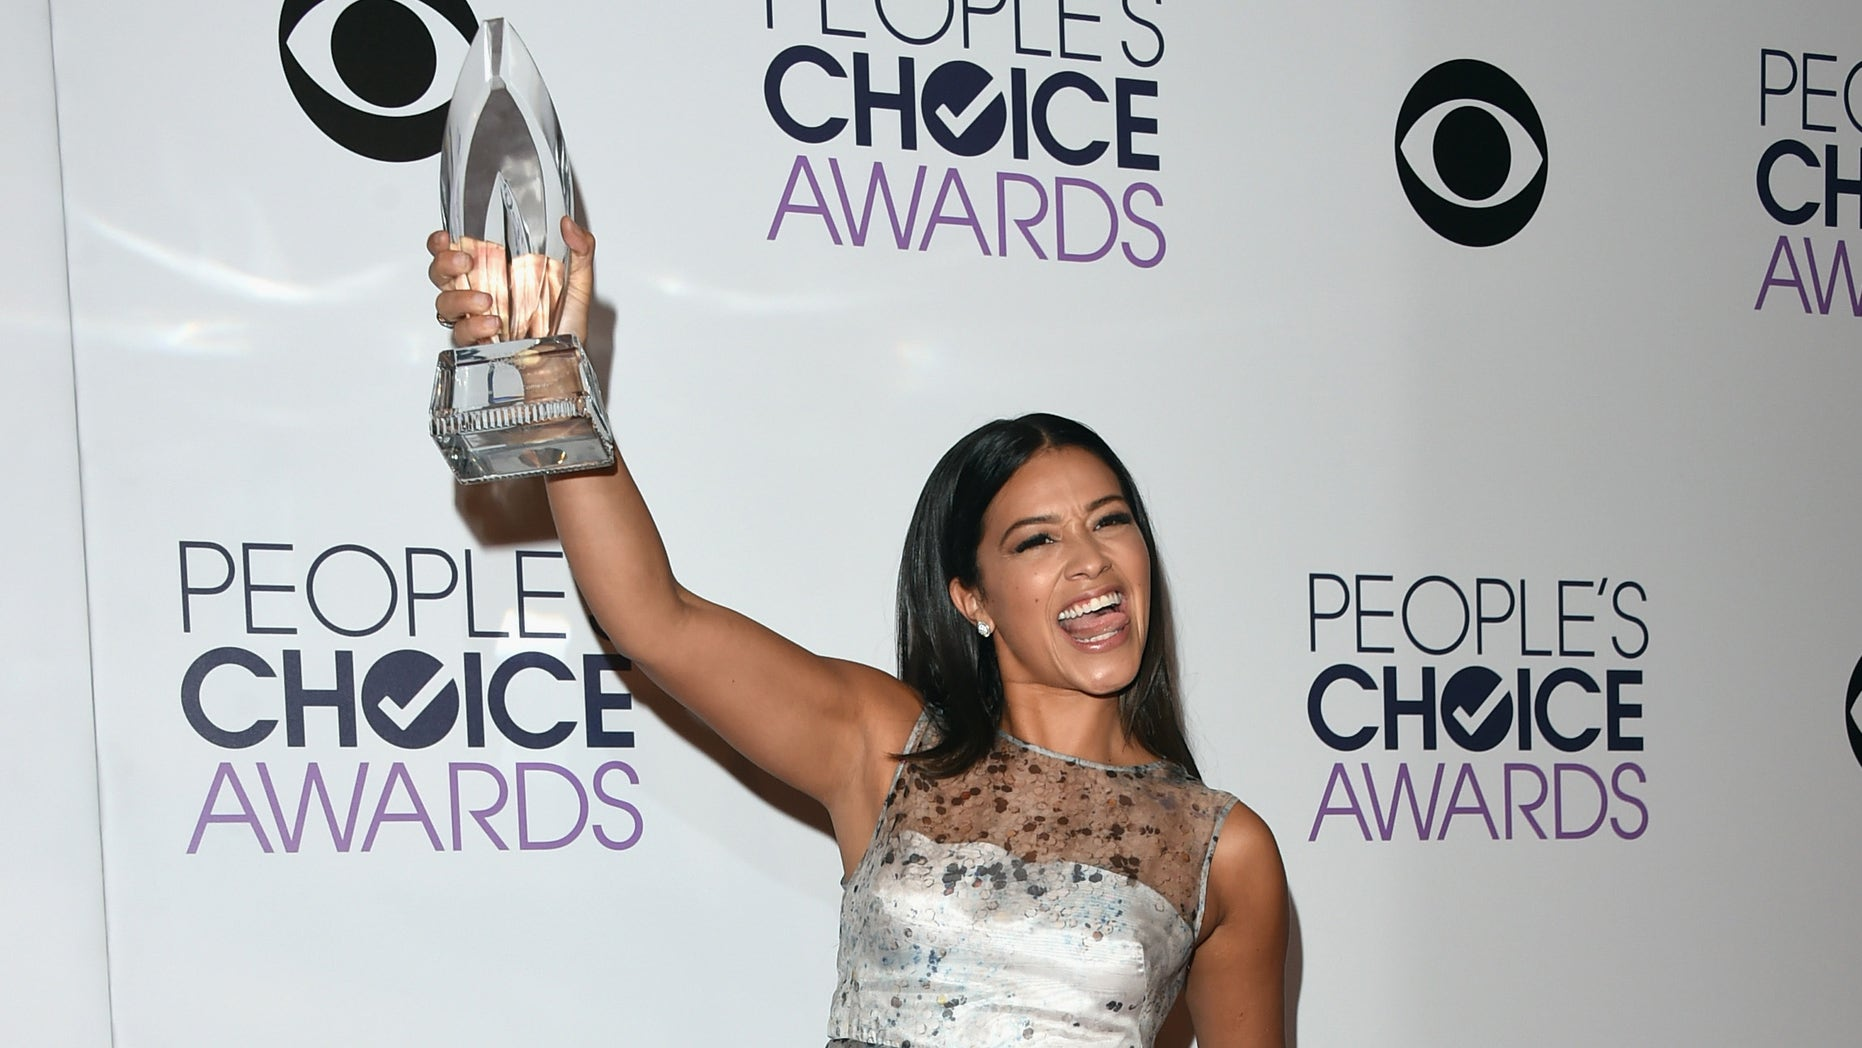 LOS ANGELES, CA - JANUARY 07:  Actress Gina Rodriguez poses in the press room at The 41st Annual People's Choice Awards at Nokia Theatre LA Live on January 7, 2015 in Los Angeles, California.  (Photo by Jason Merritt/Getty Images)